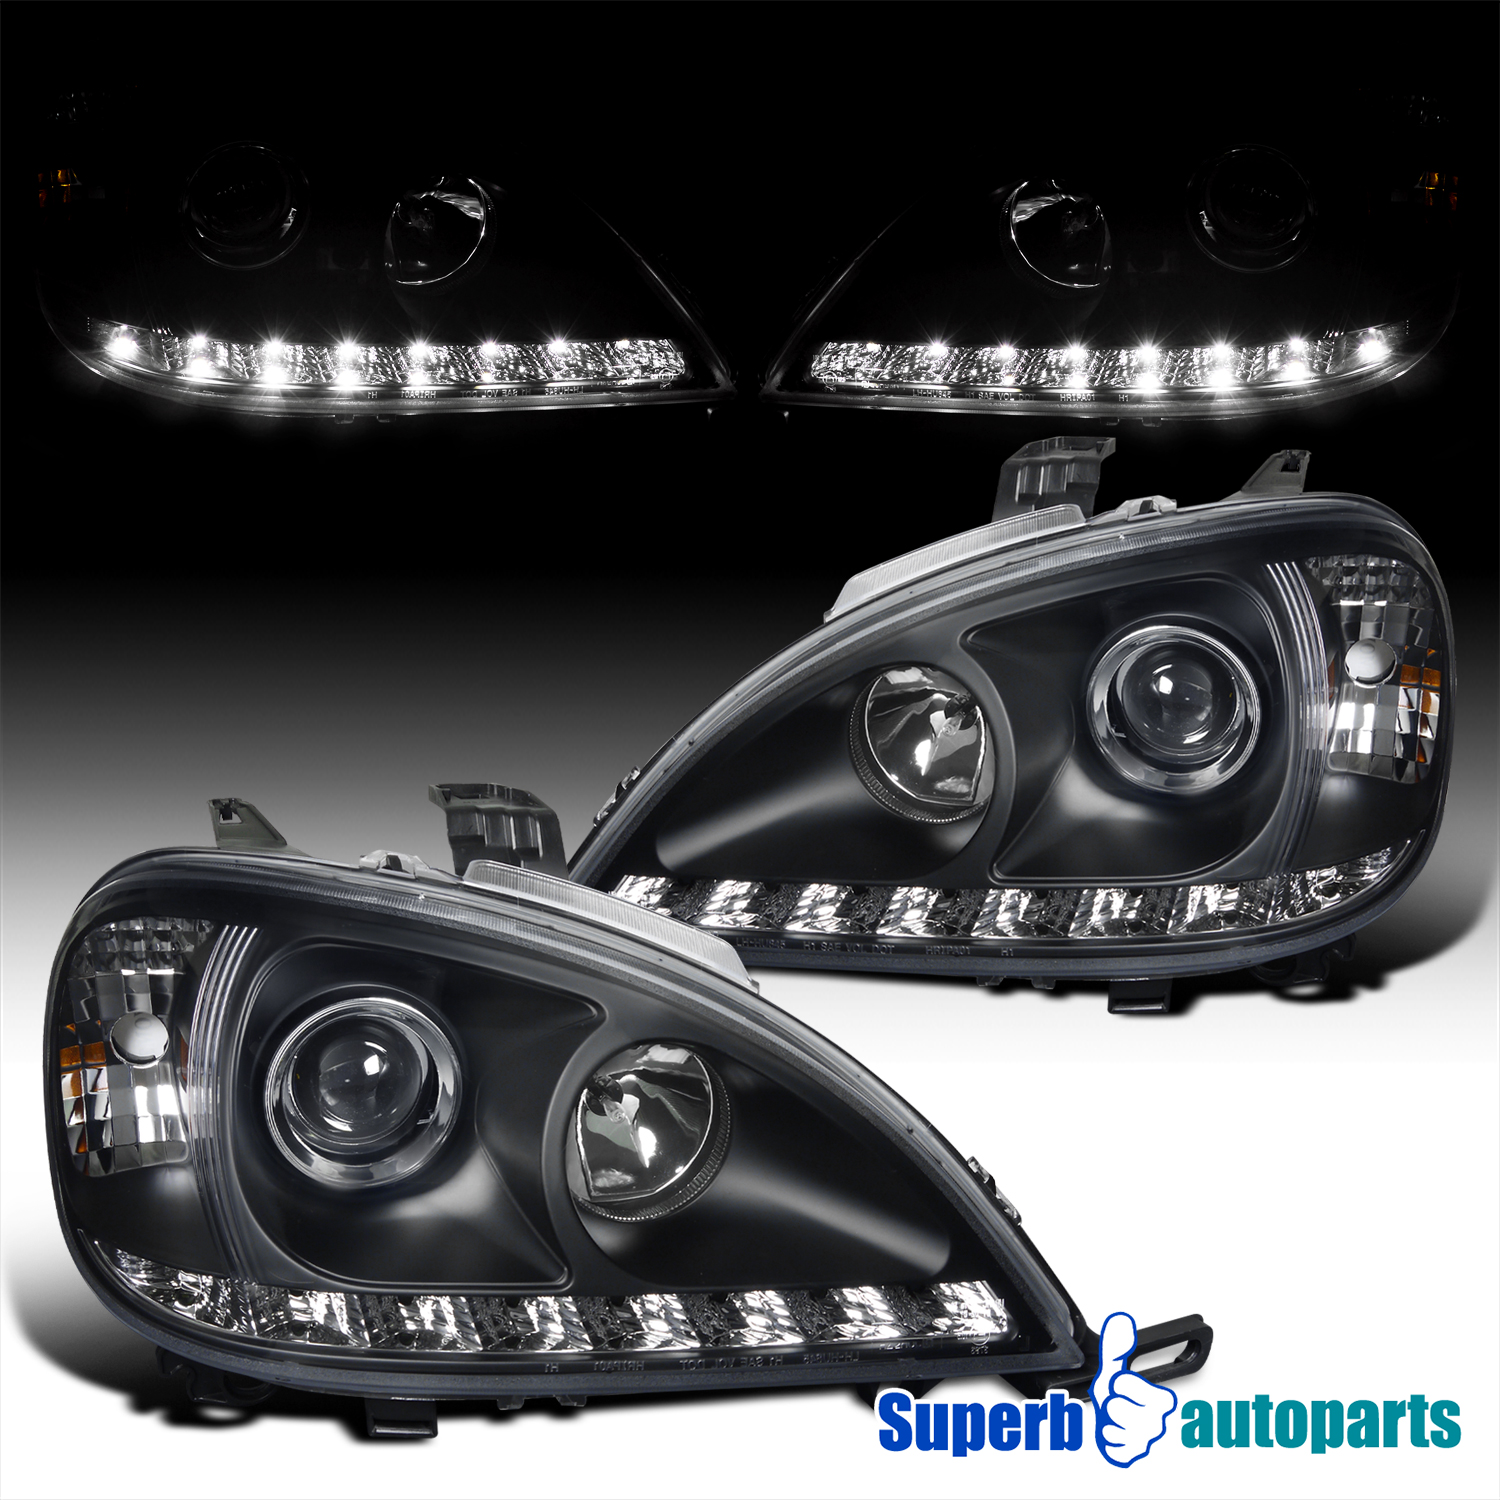 For 2002-2005 Benz W163 ML-Class LED DRL Projector